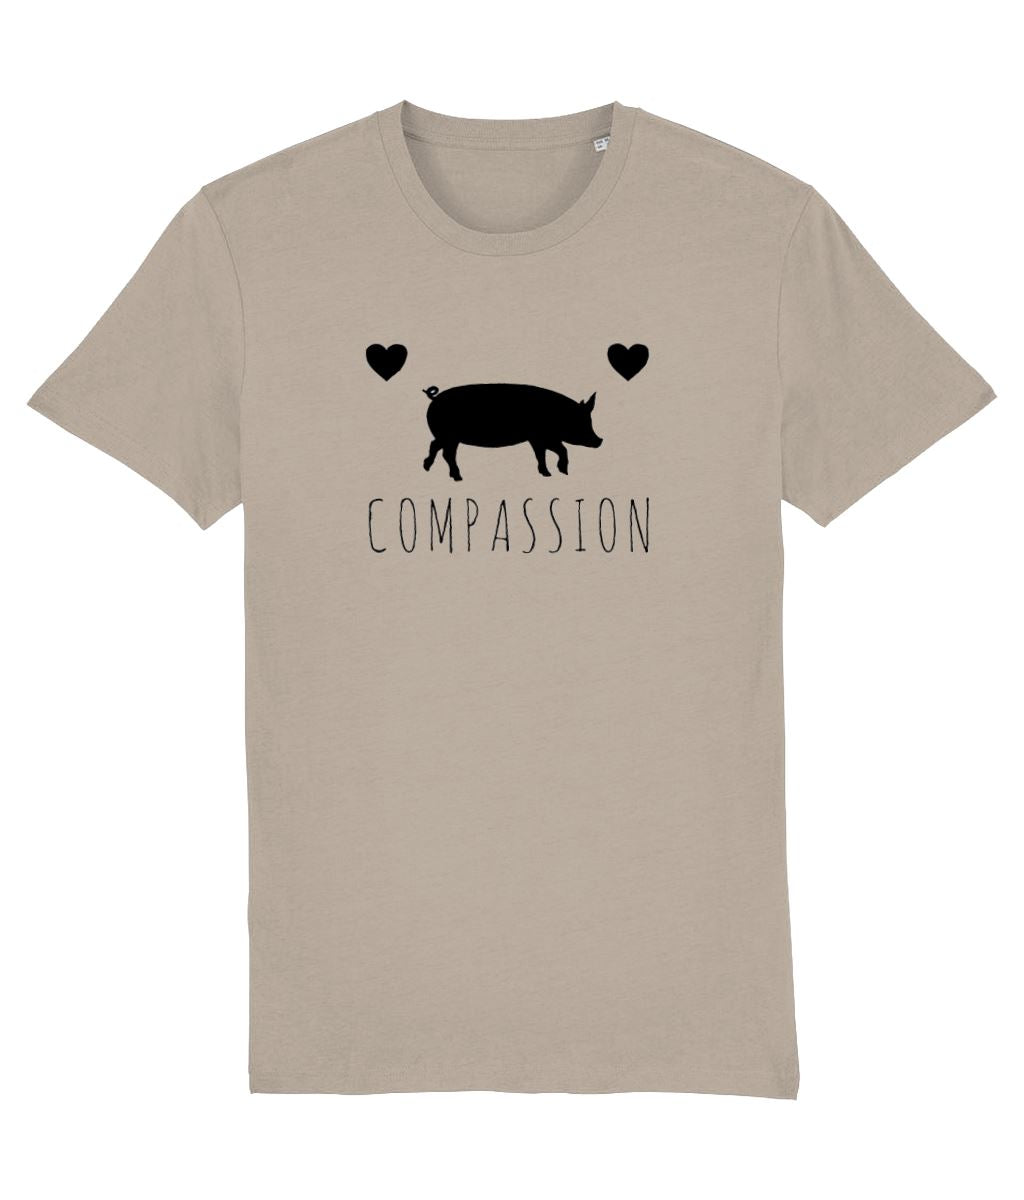 """Compassion"" Vegan T-Shirt - 100% Organic Cotton (Unisex) Clothing Vegan Original Desert Dust X-Small"